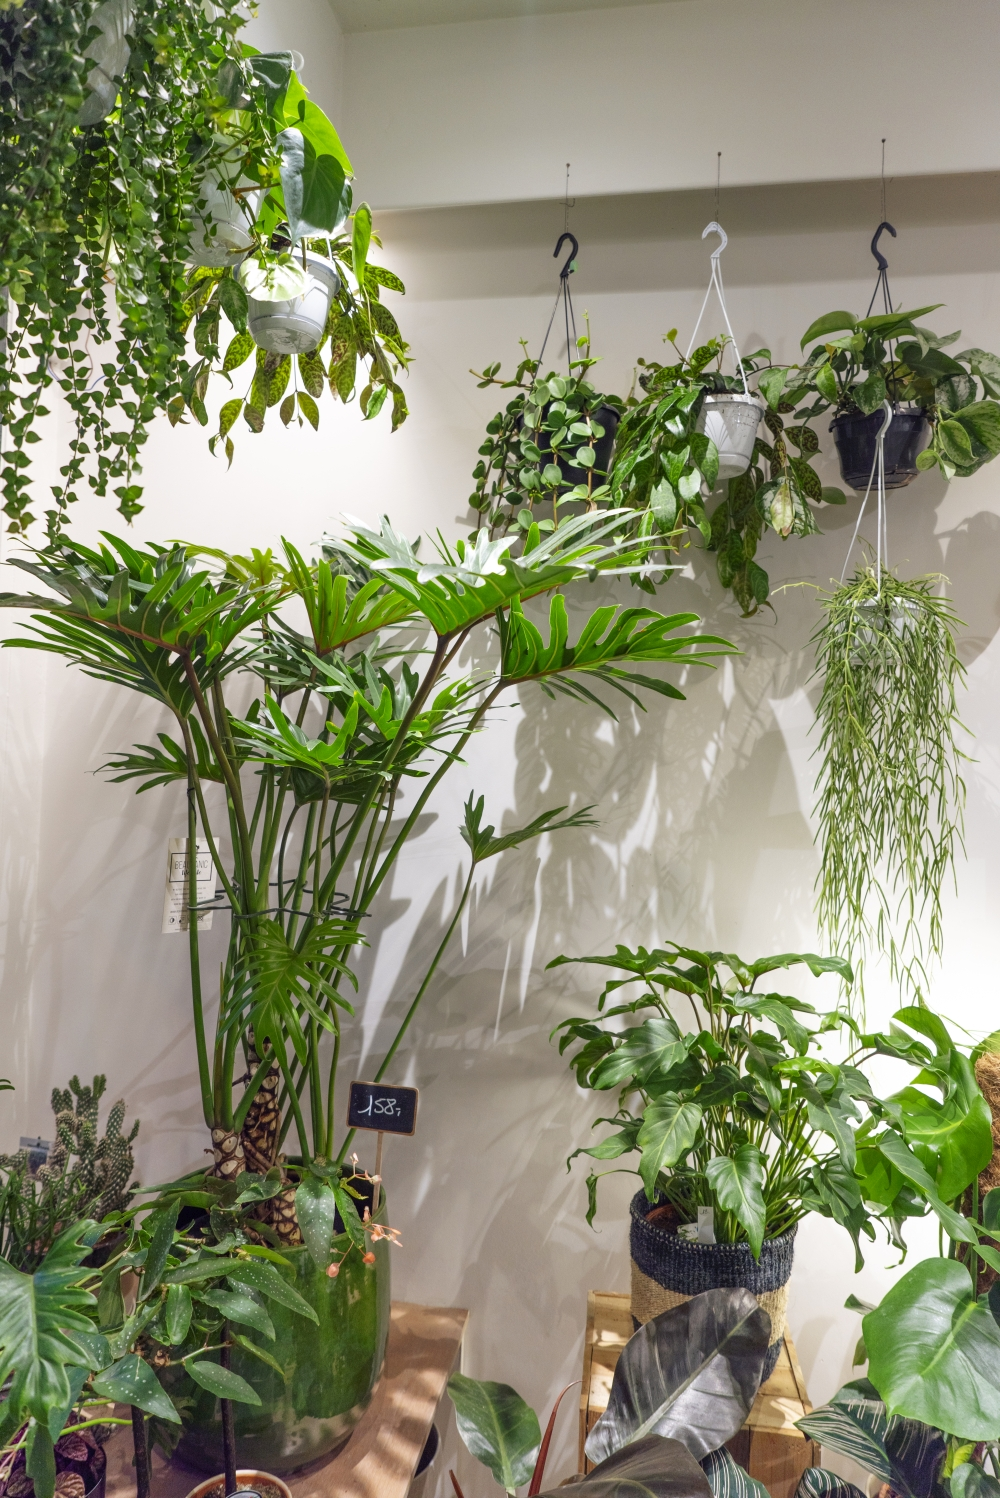 Urban Jungle Bloggers - Little Green Stories plant shop Ghent #urbanjunglebloggers #plantshop